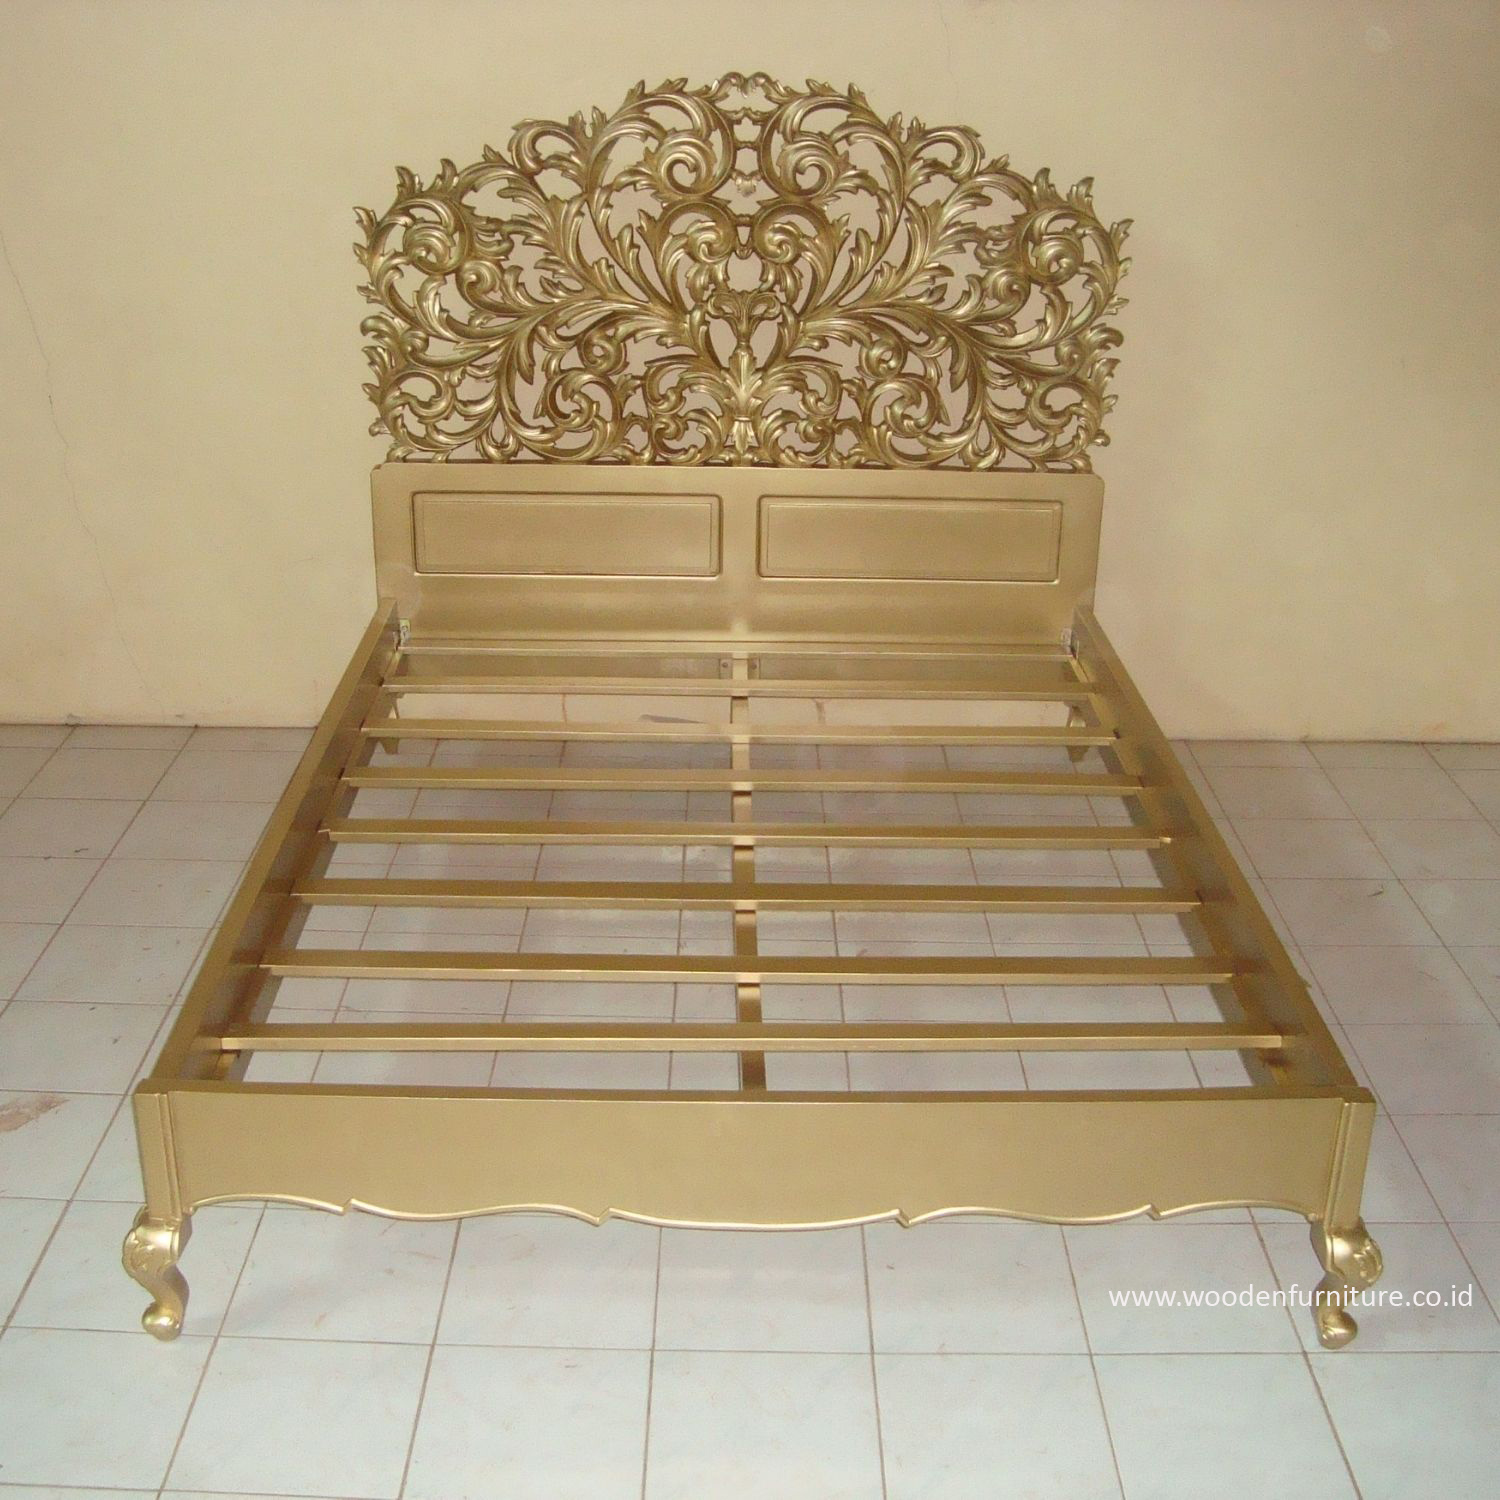 Golden Bed Antique Reproduction Bed French Style Wooden Bed Mahogany Painted Bedroom Furniture European Style Home Furniture Buy French Provincial Painted Furniture Cheap European Style Home Furniture European Bedroom Furniture Product On Alibaba Com